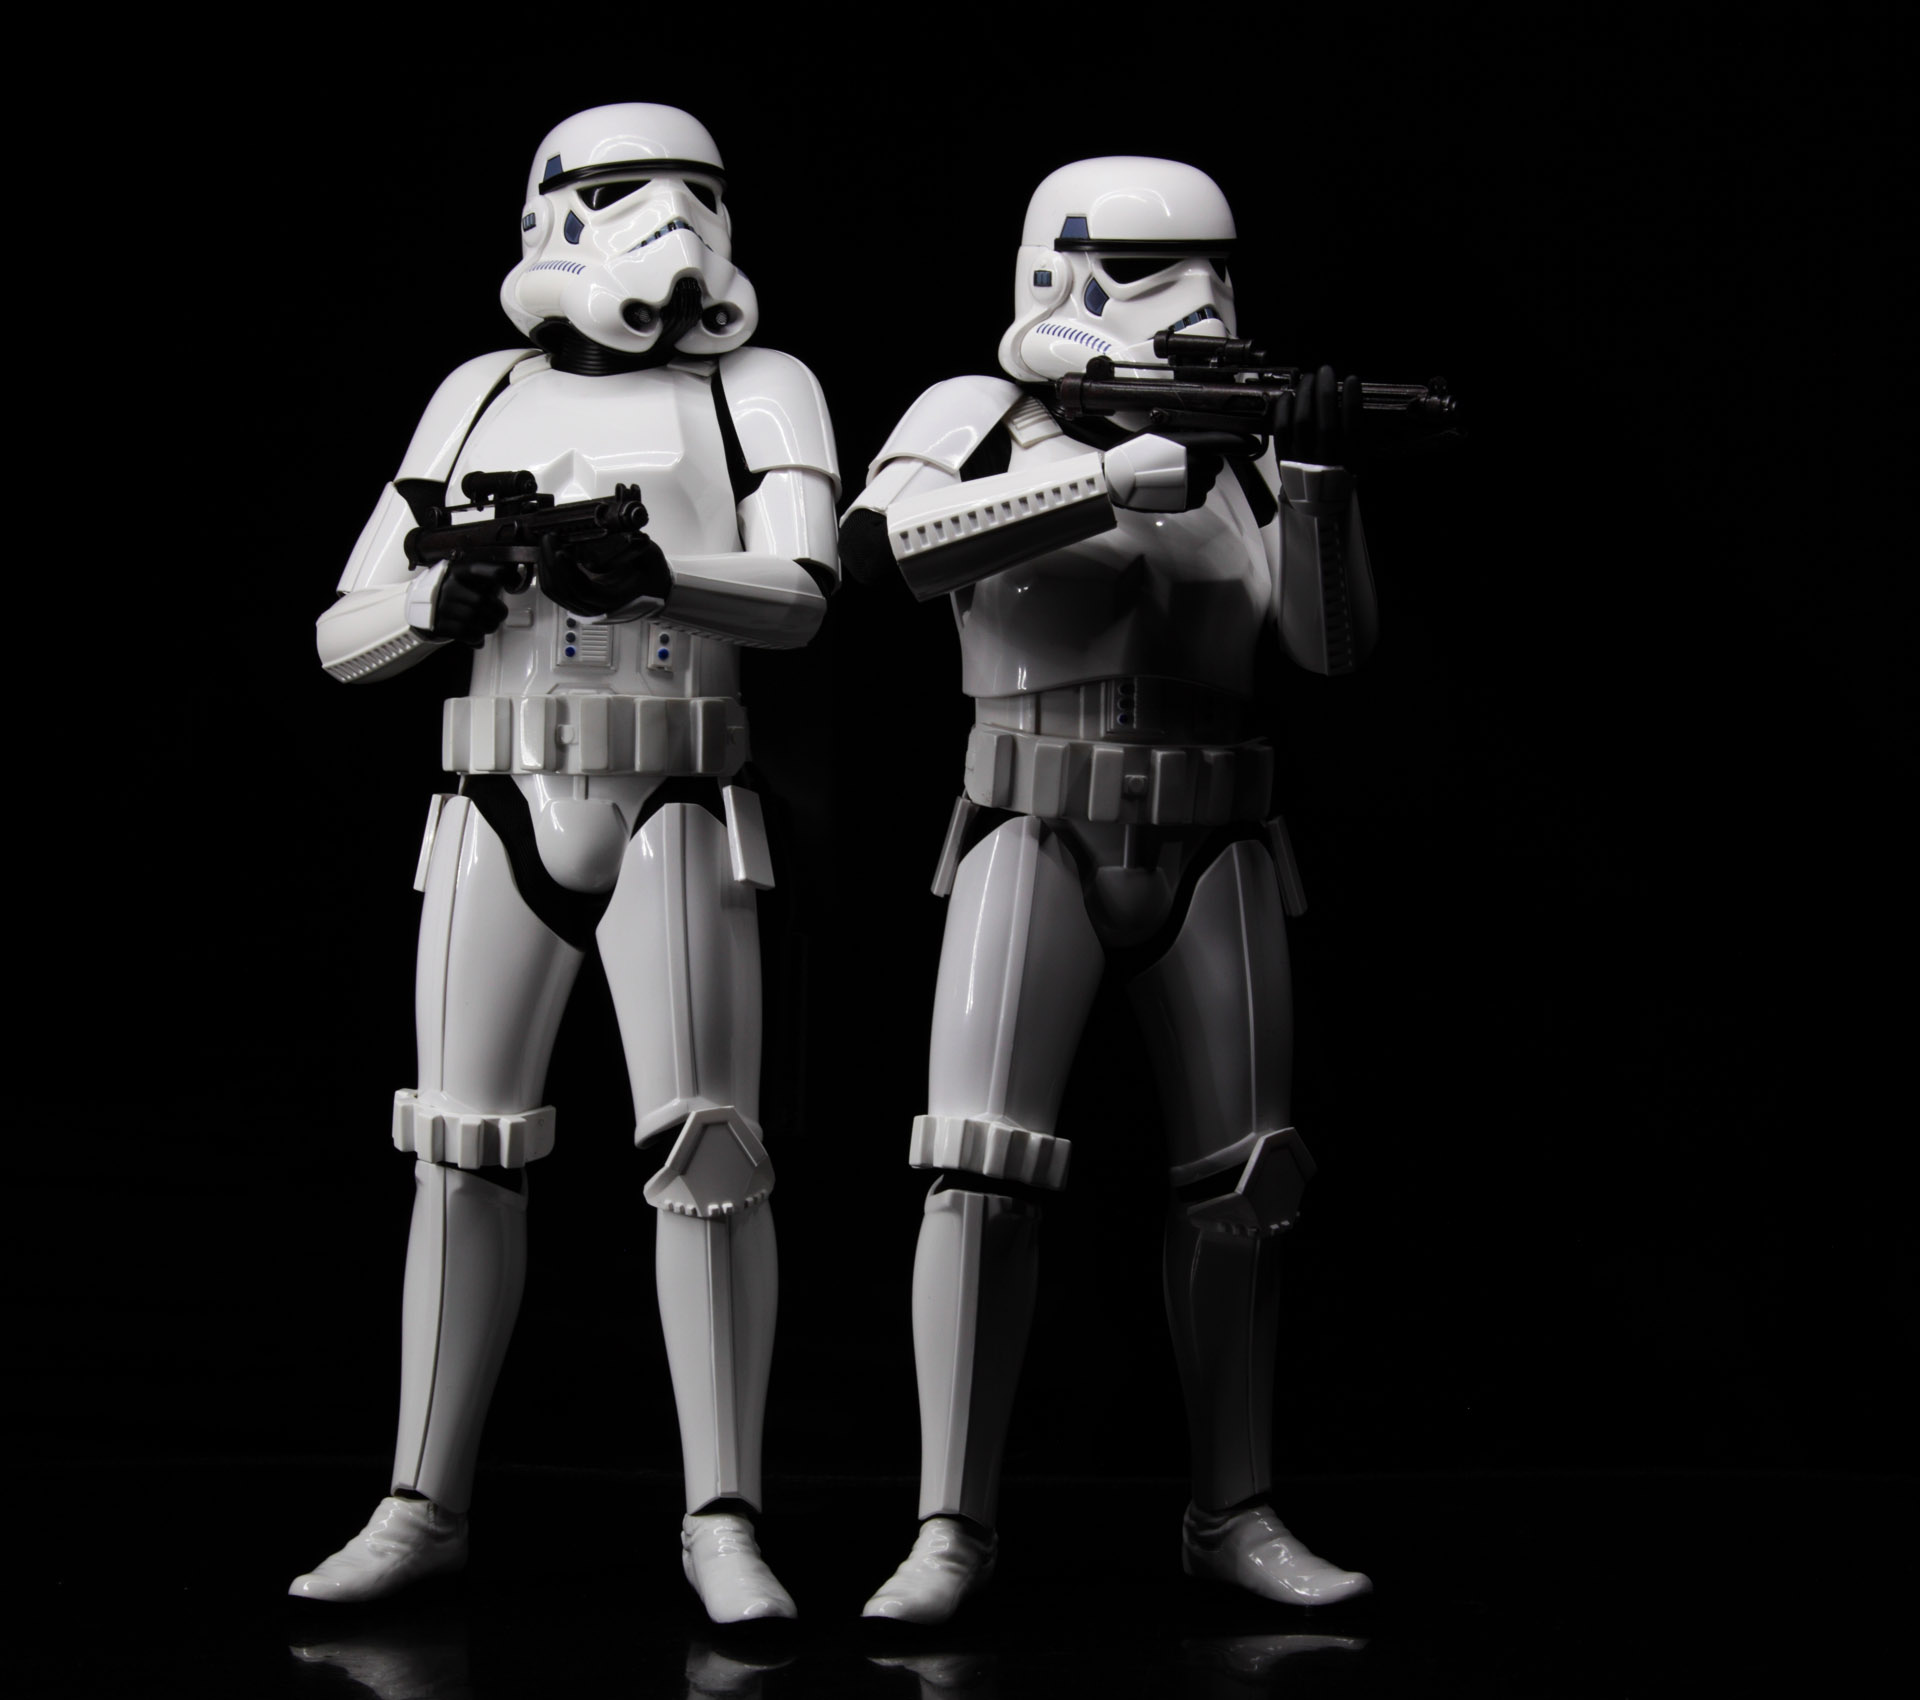 hottoys-star-wars-episode-4-a-new-hope-stormtroopers-set-picture03